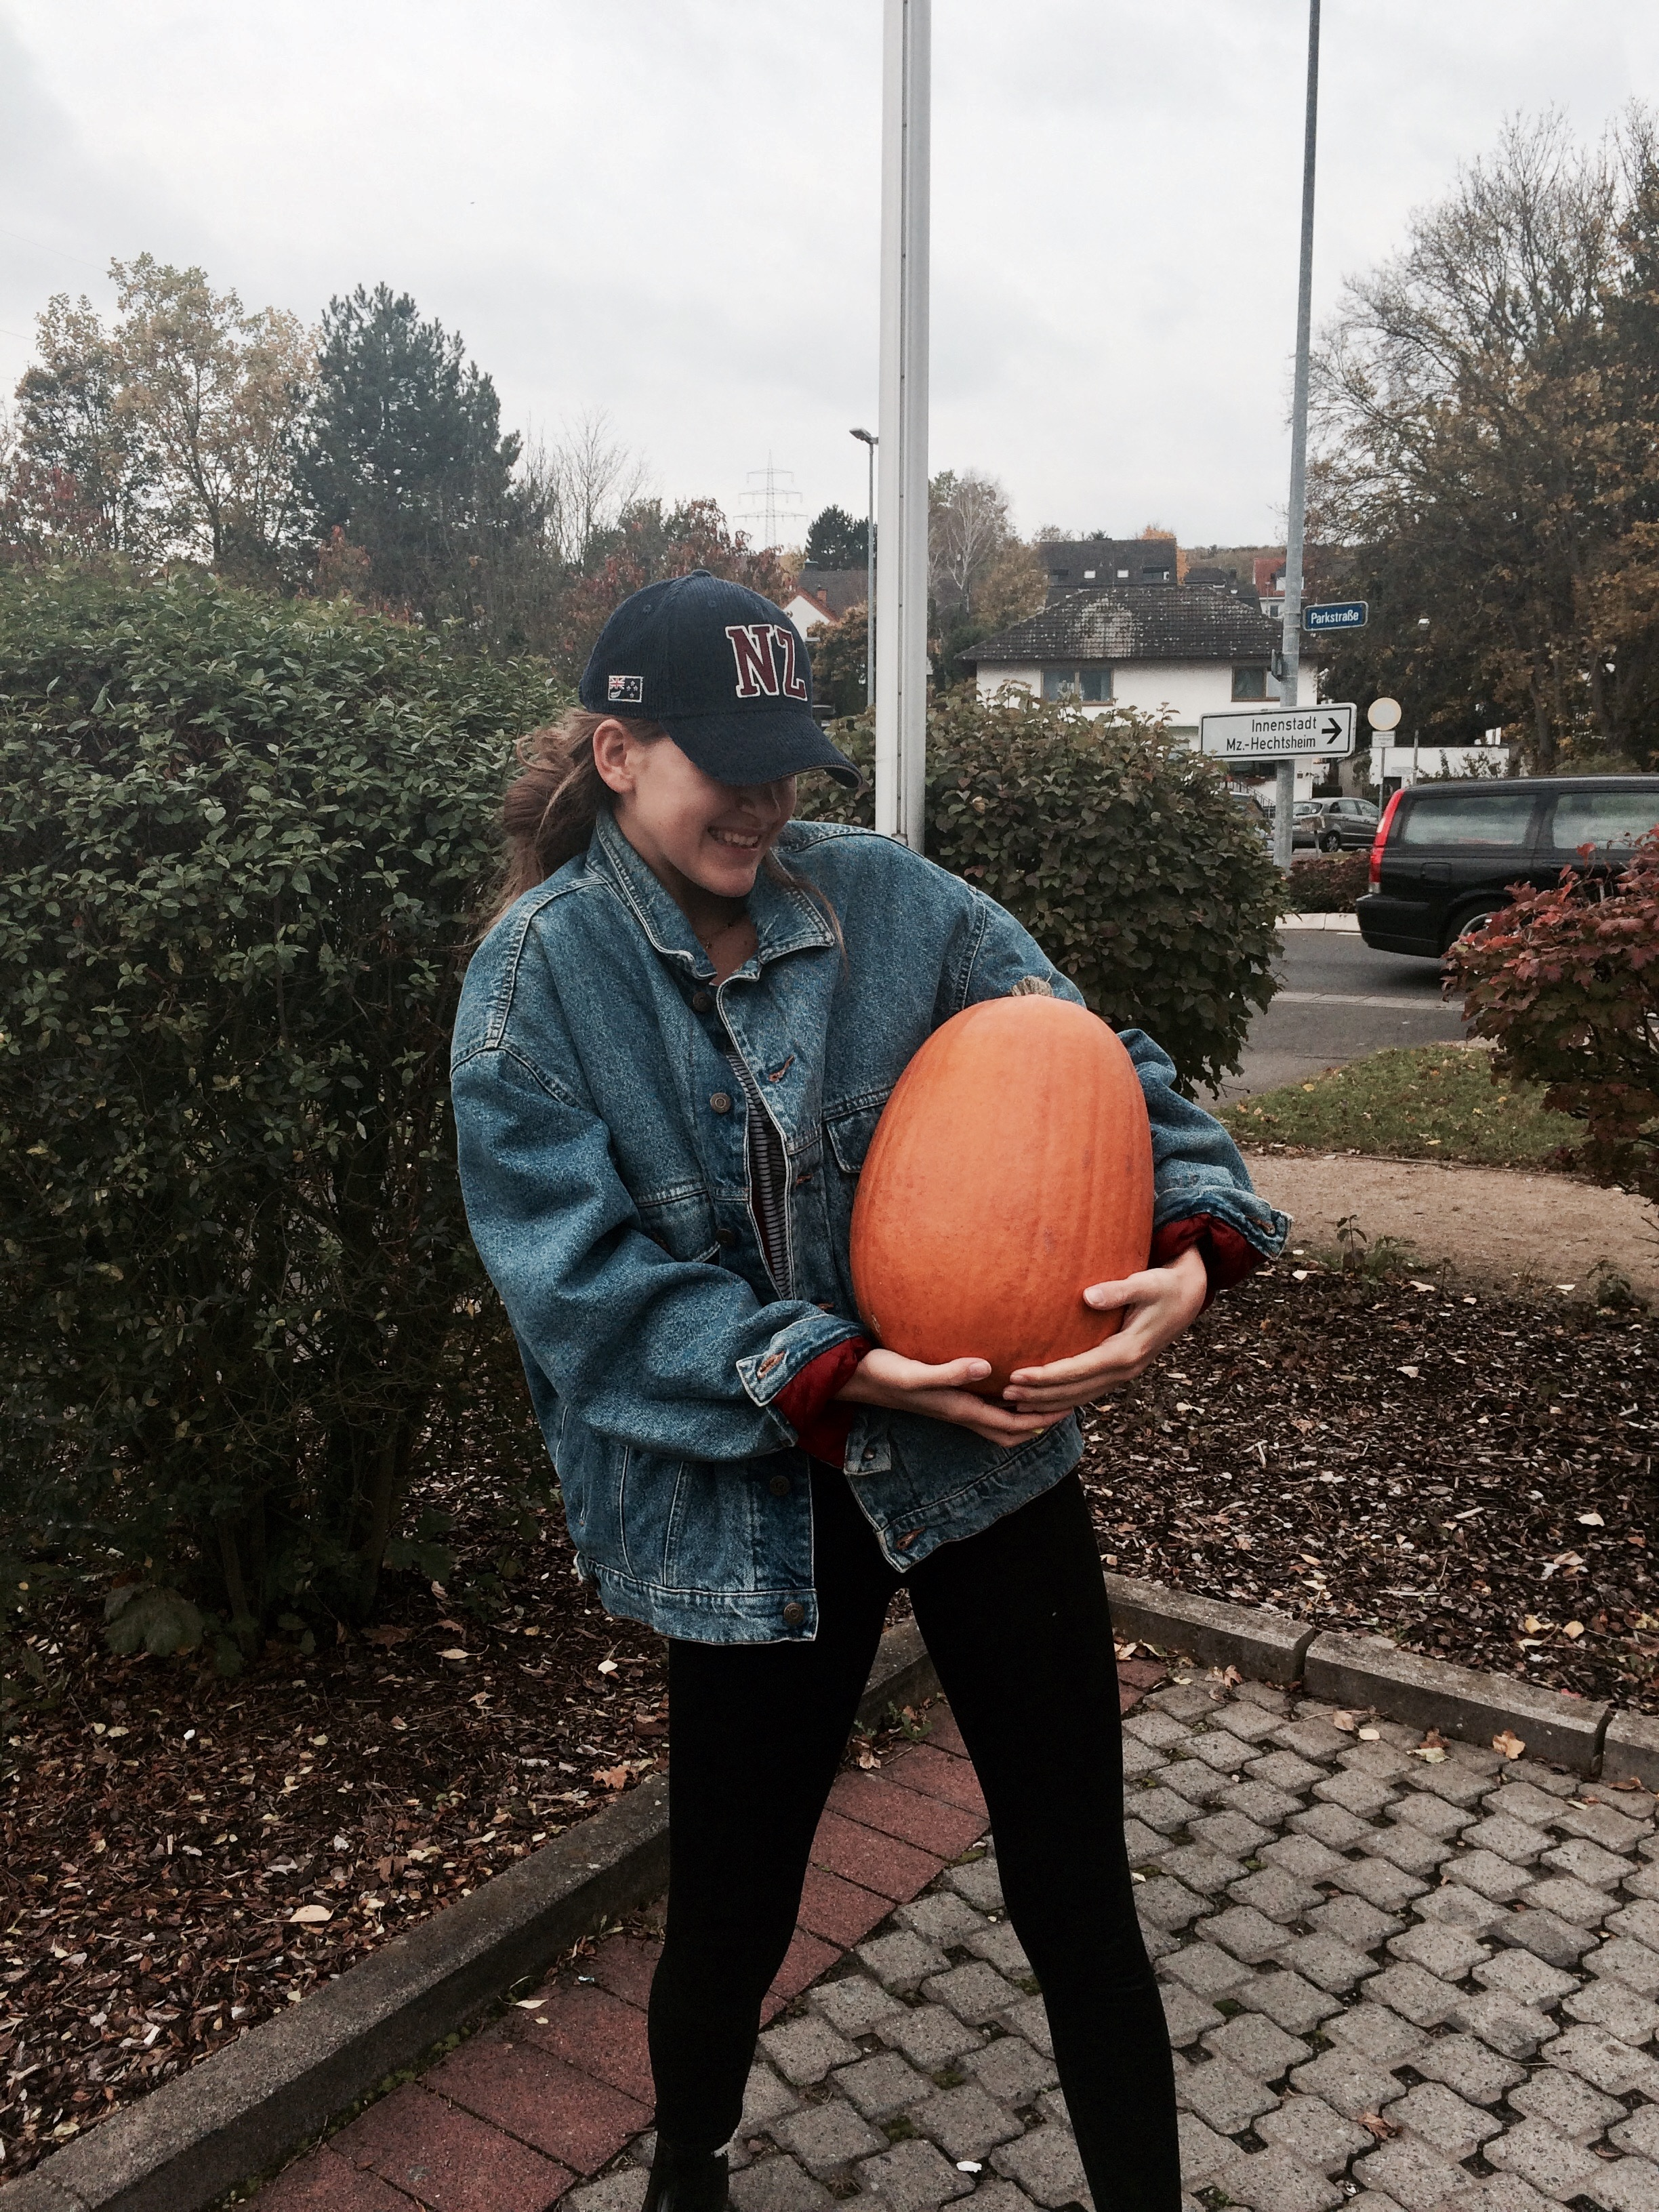 Can you tell I was really exited about those pumpkins?